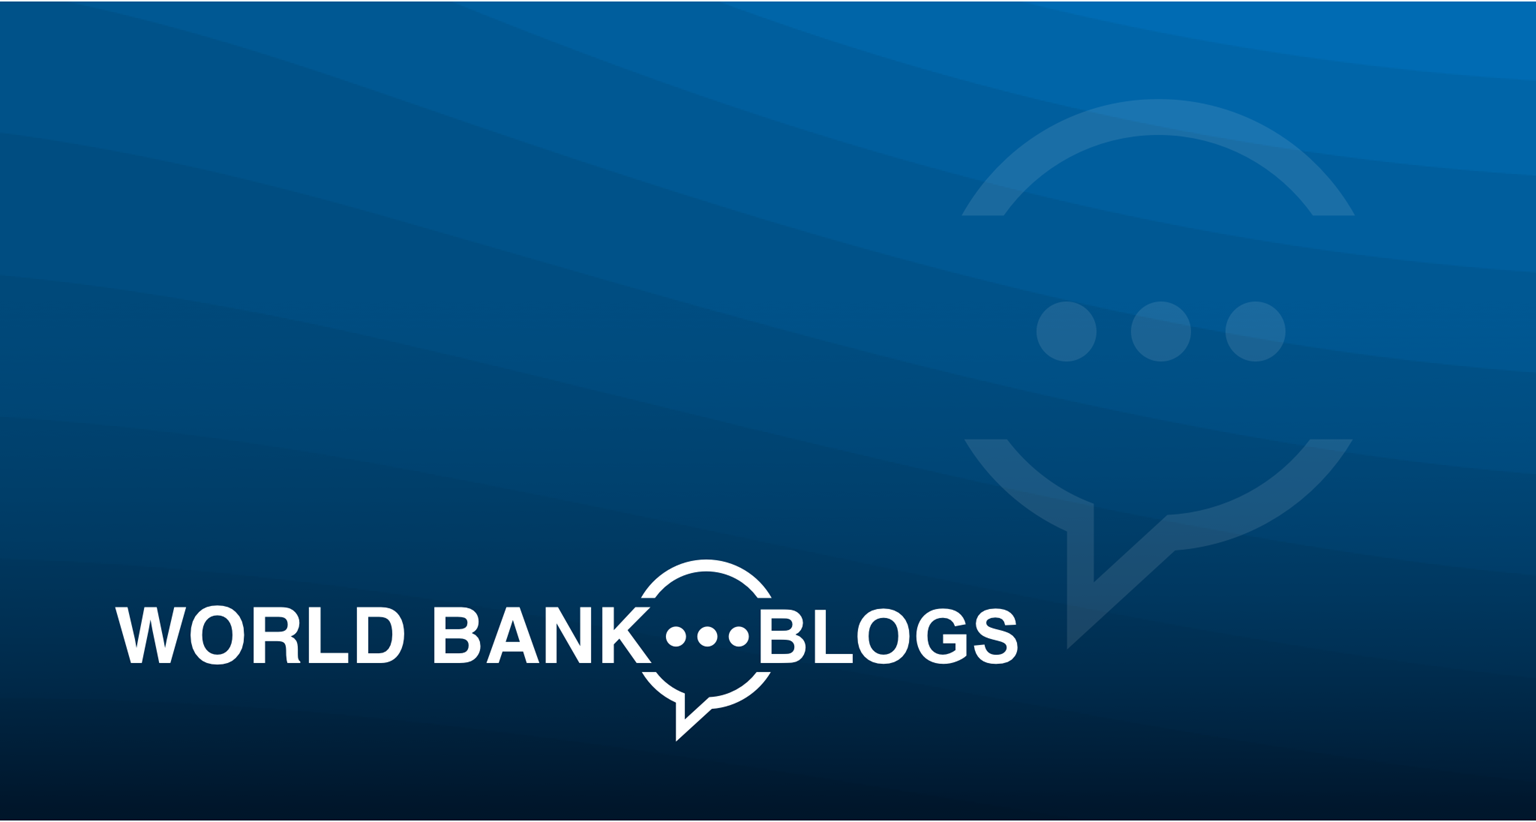 World Bank staff shared their Blogs related to COVID-19